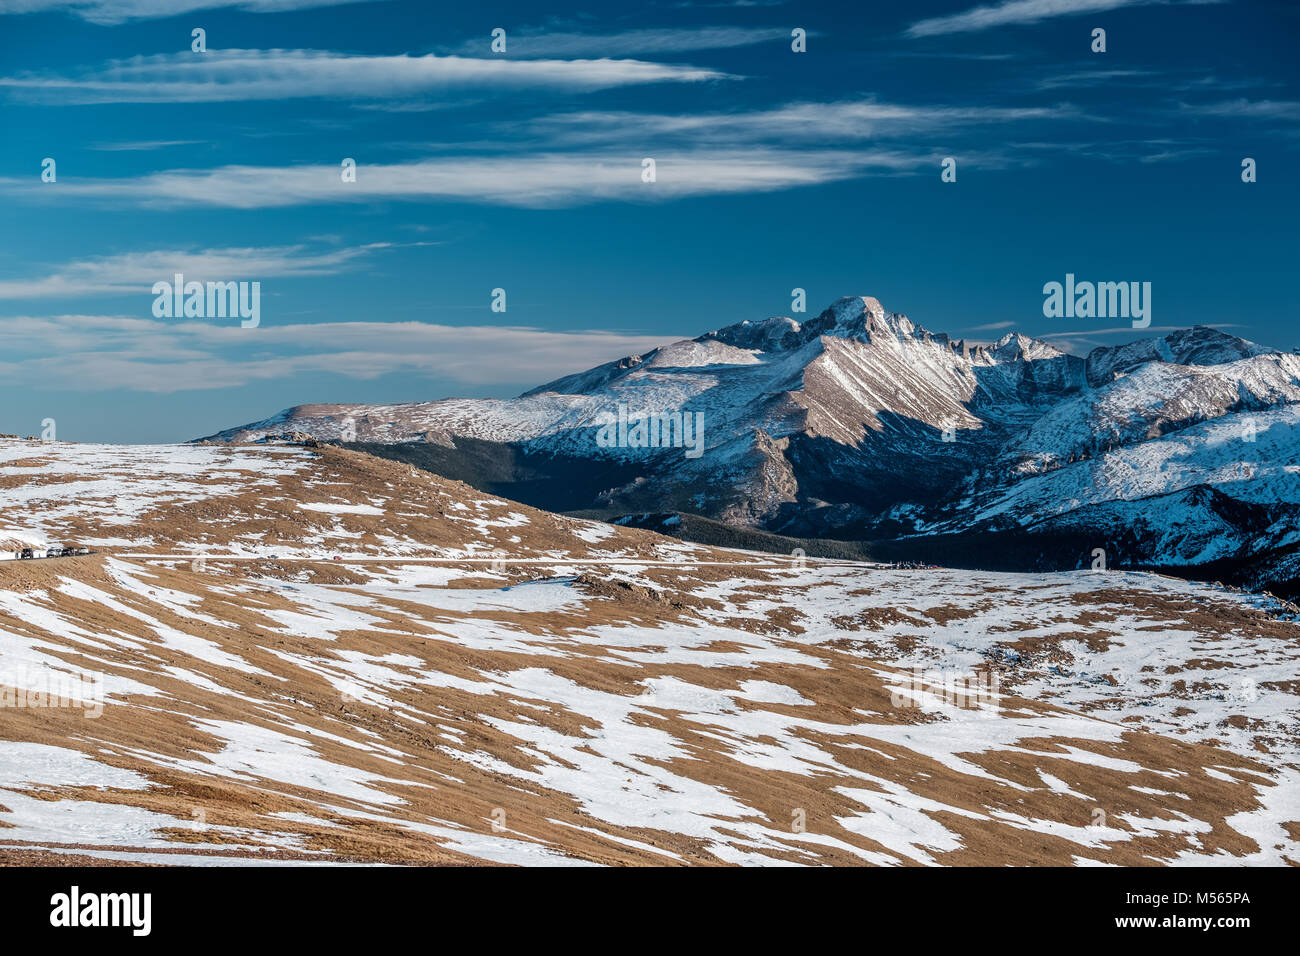 High alpine tundra landscape with mountains - Stock Image